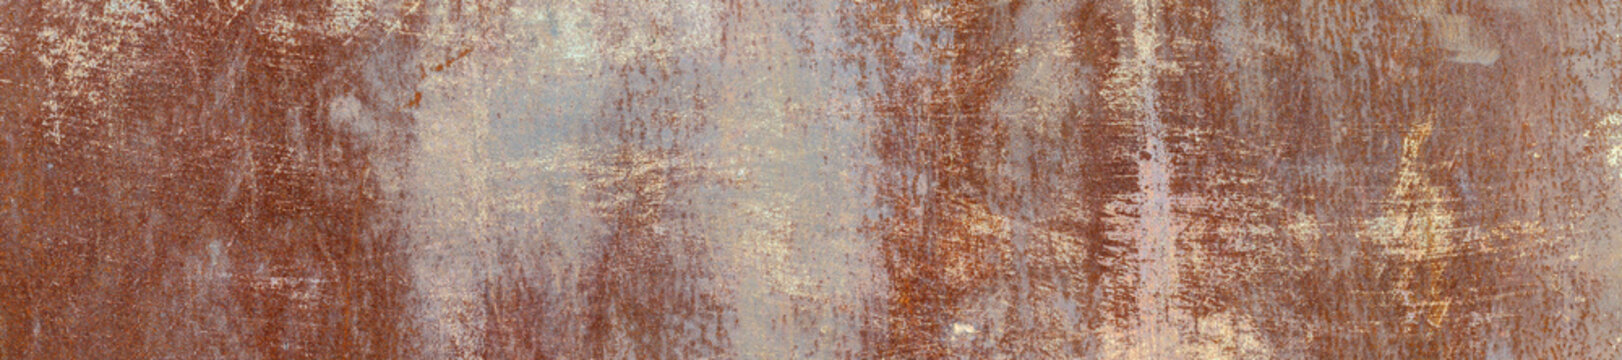 The Texture Of The Old Rusty Metal Plate. HD Panorama.